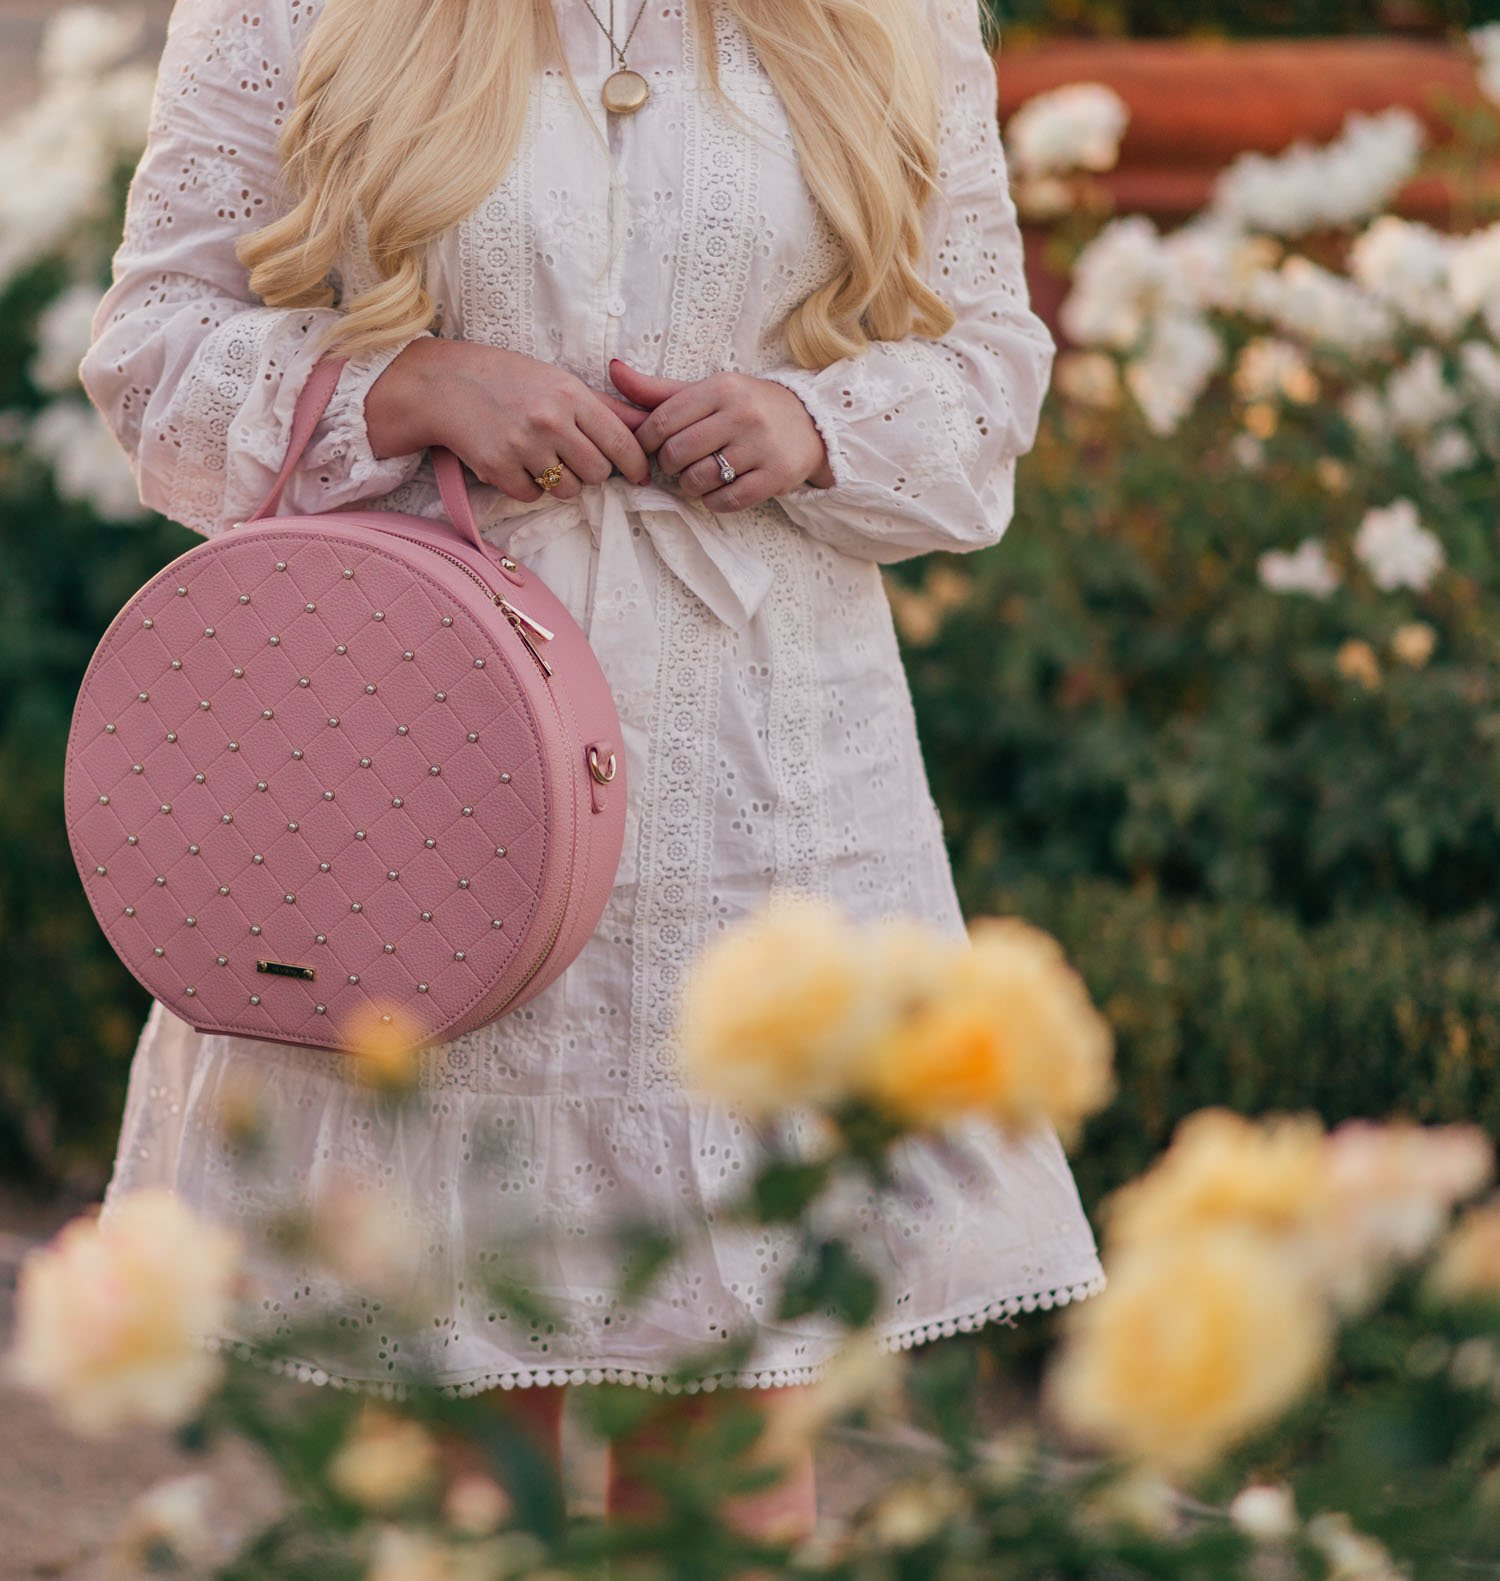 Elizabeth Hugen of Lizzie in Lace styles a feminine white and pink outfit.